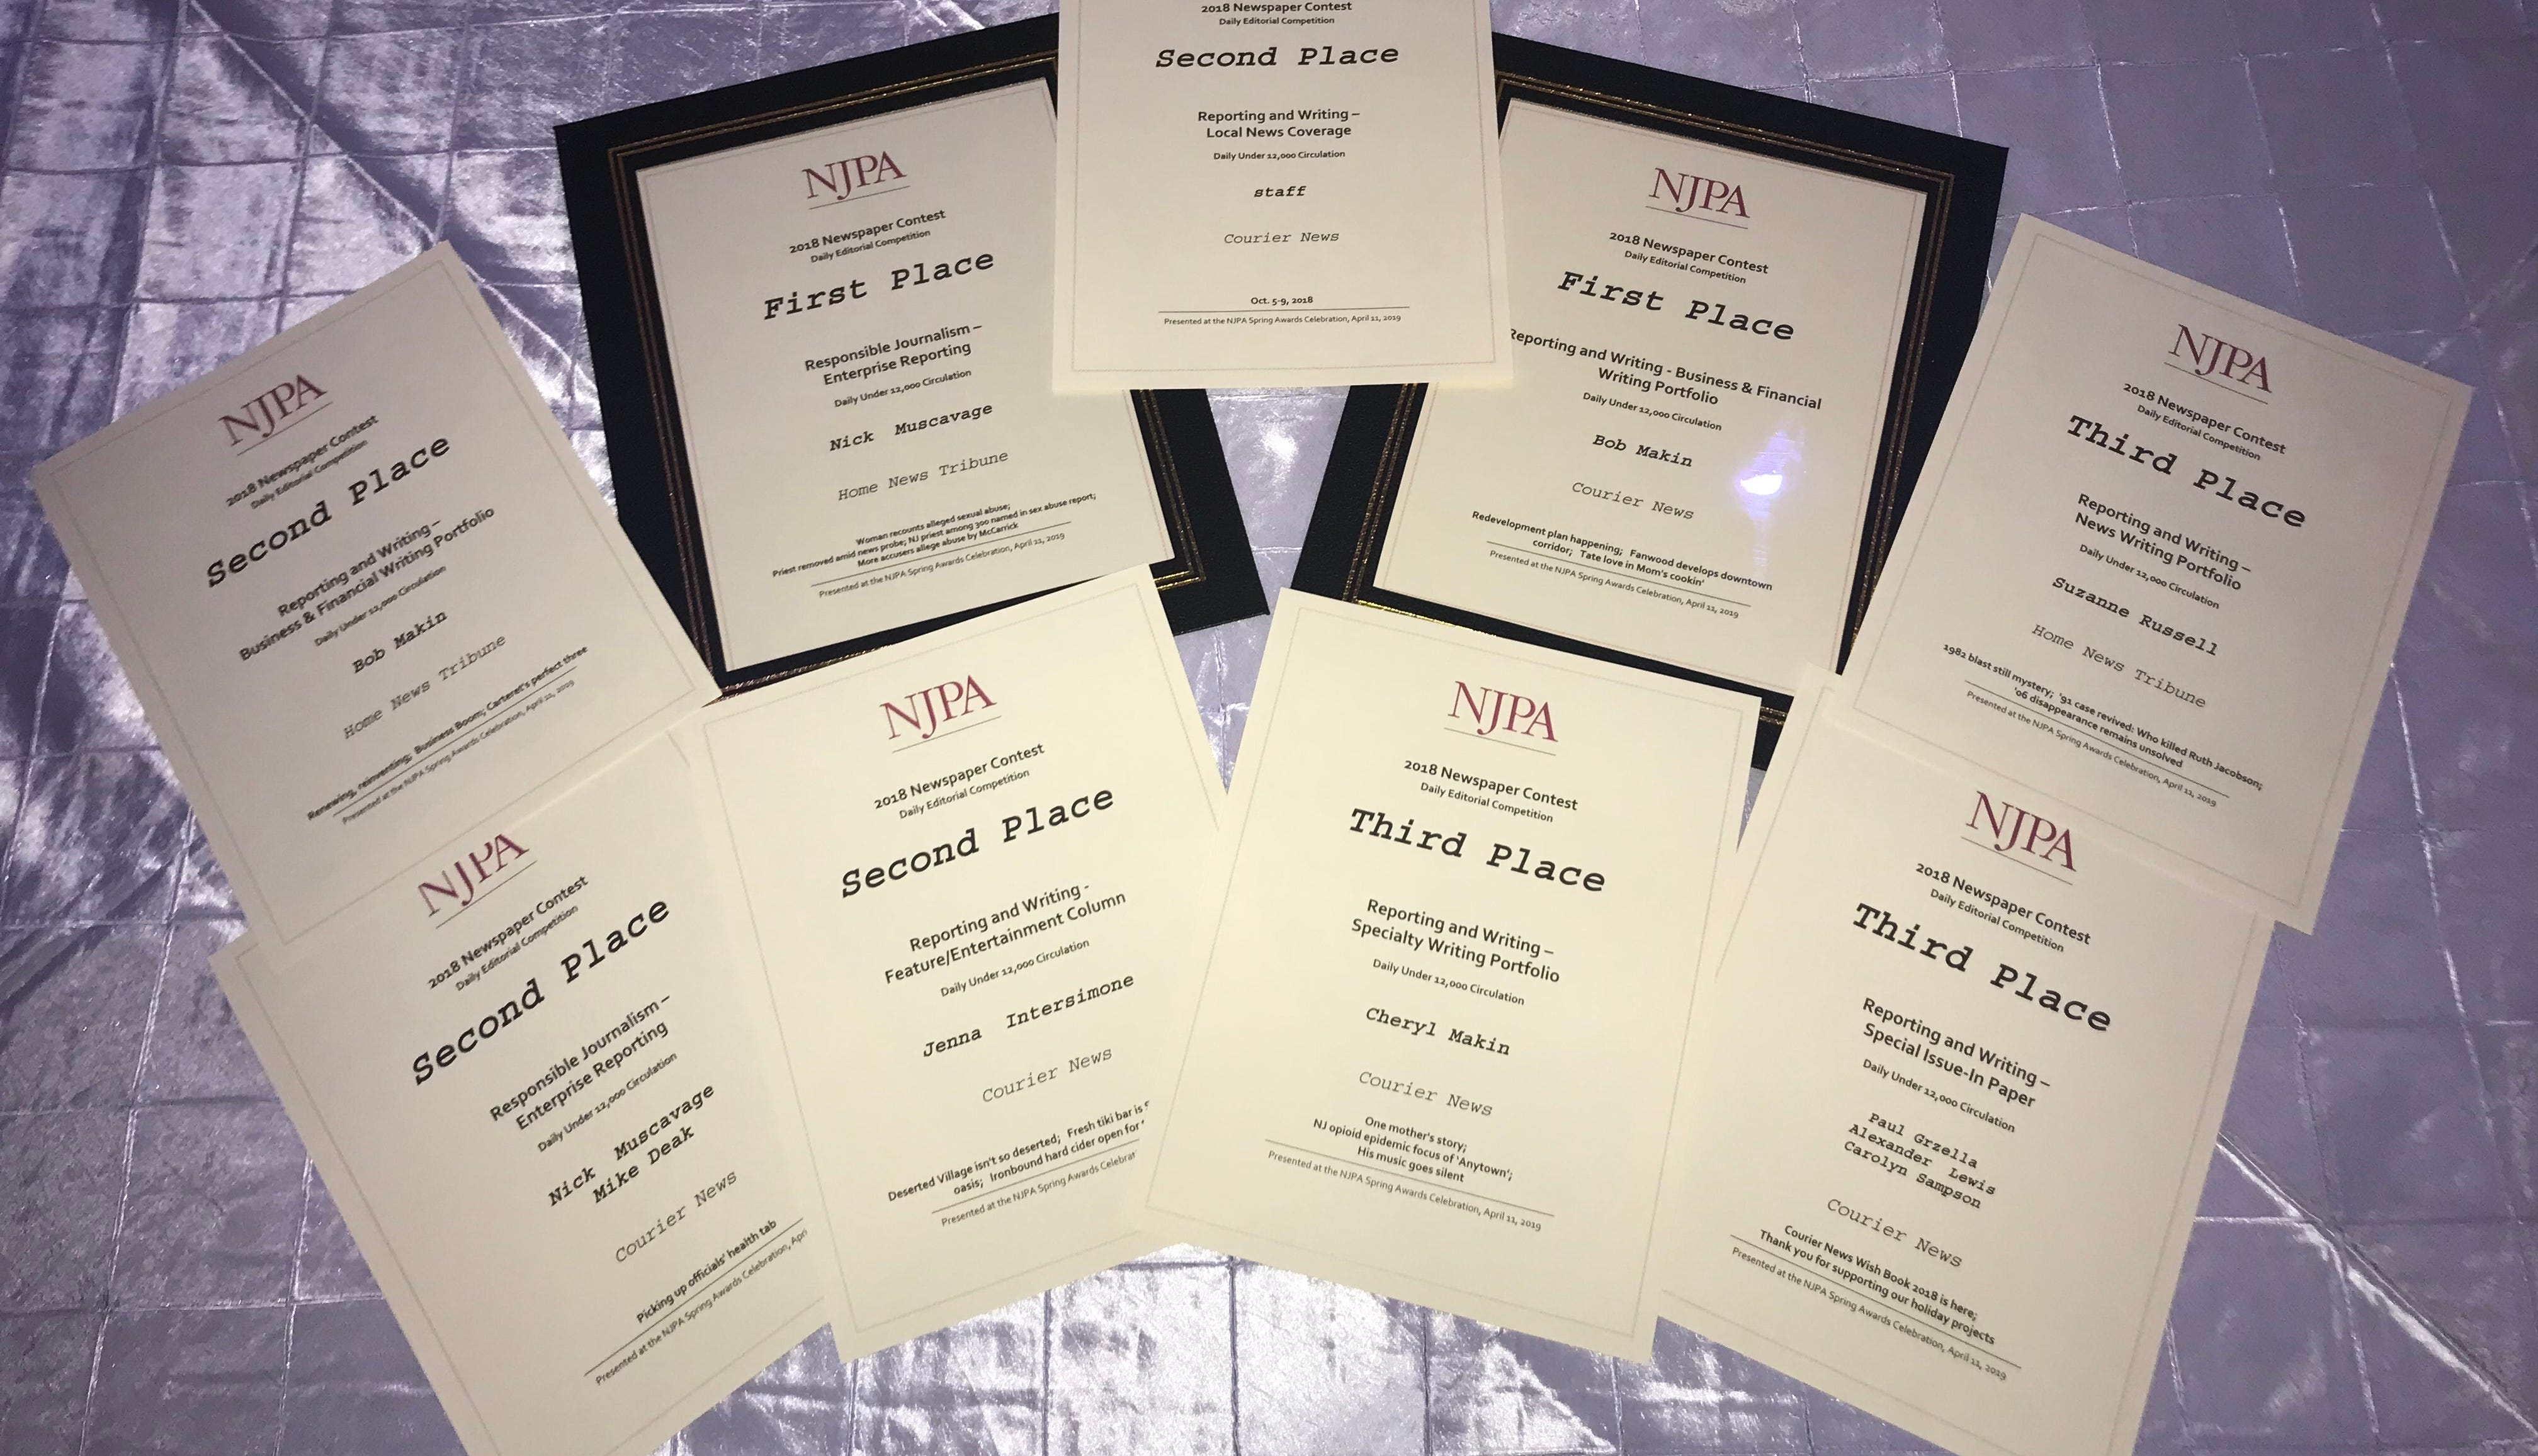 MyCentralJersey.com, Courier News, Home News Tribune journalists honored by NJPA